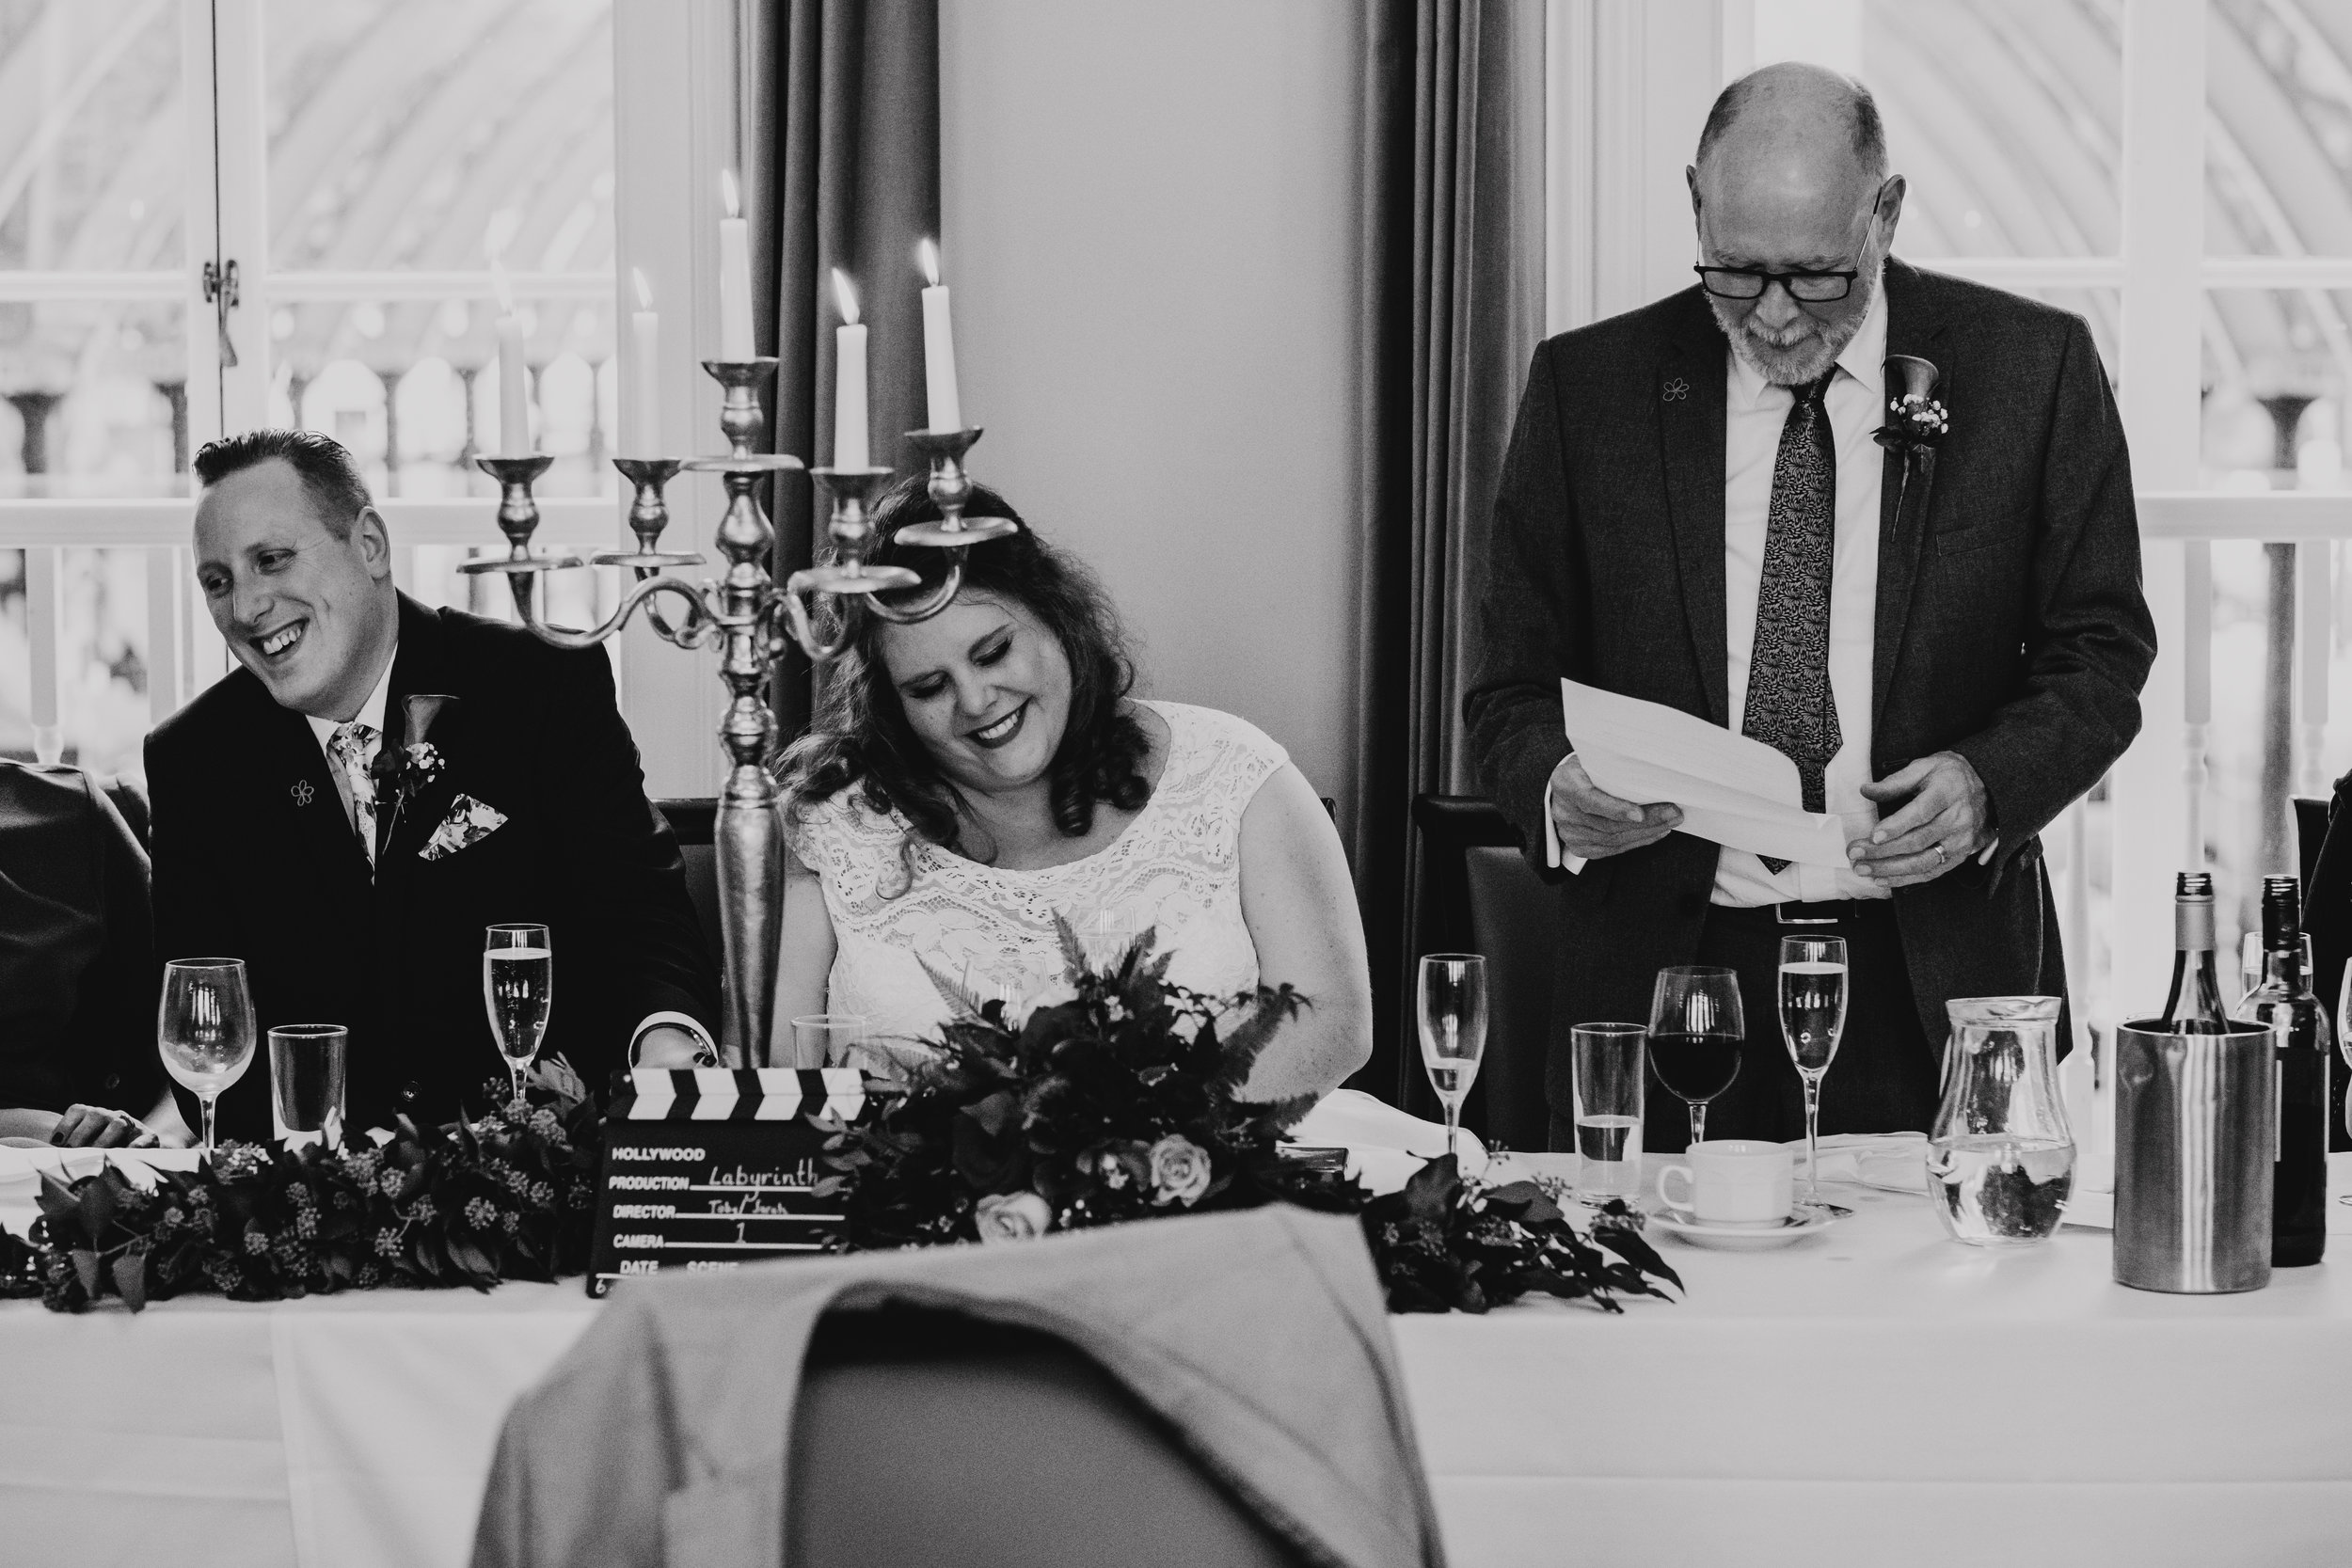 Father of the Bride speech makes Bride and Groom laugh